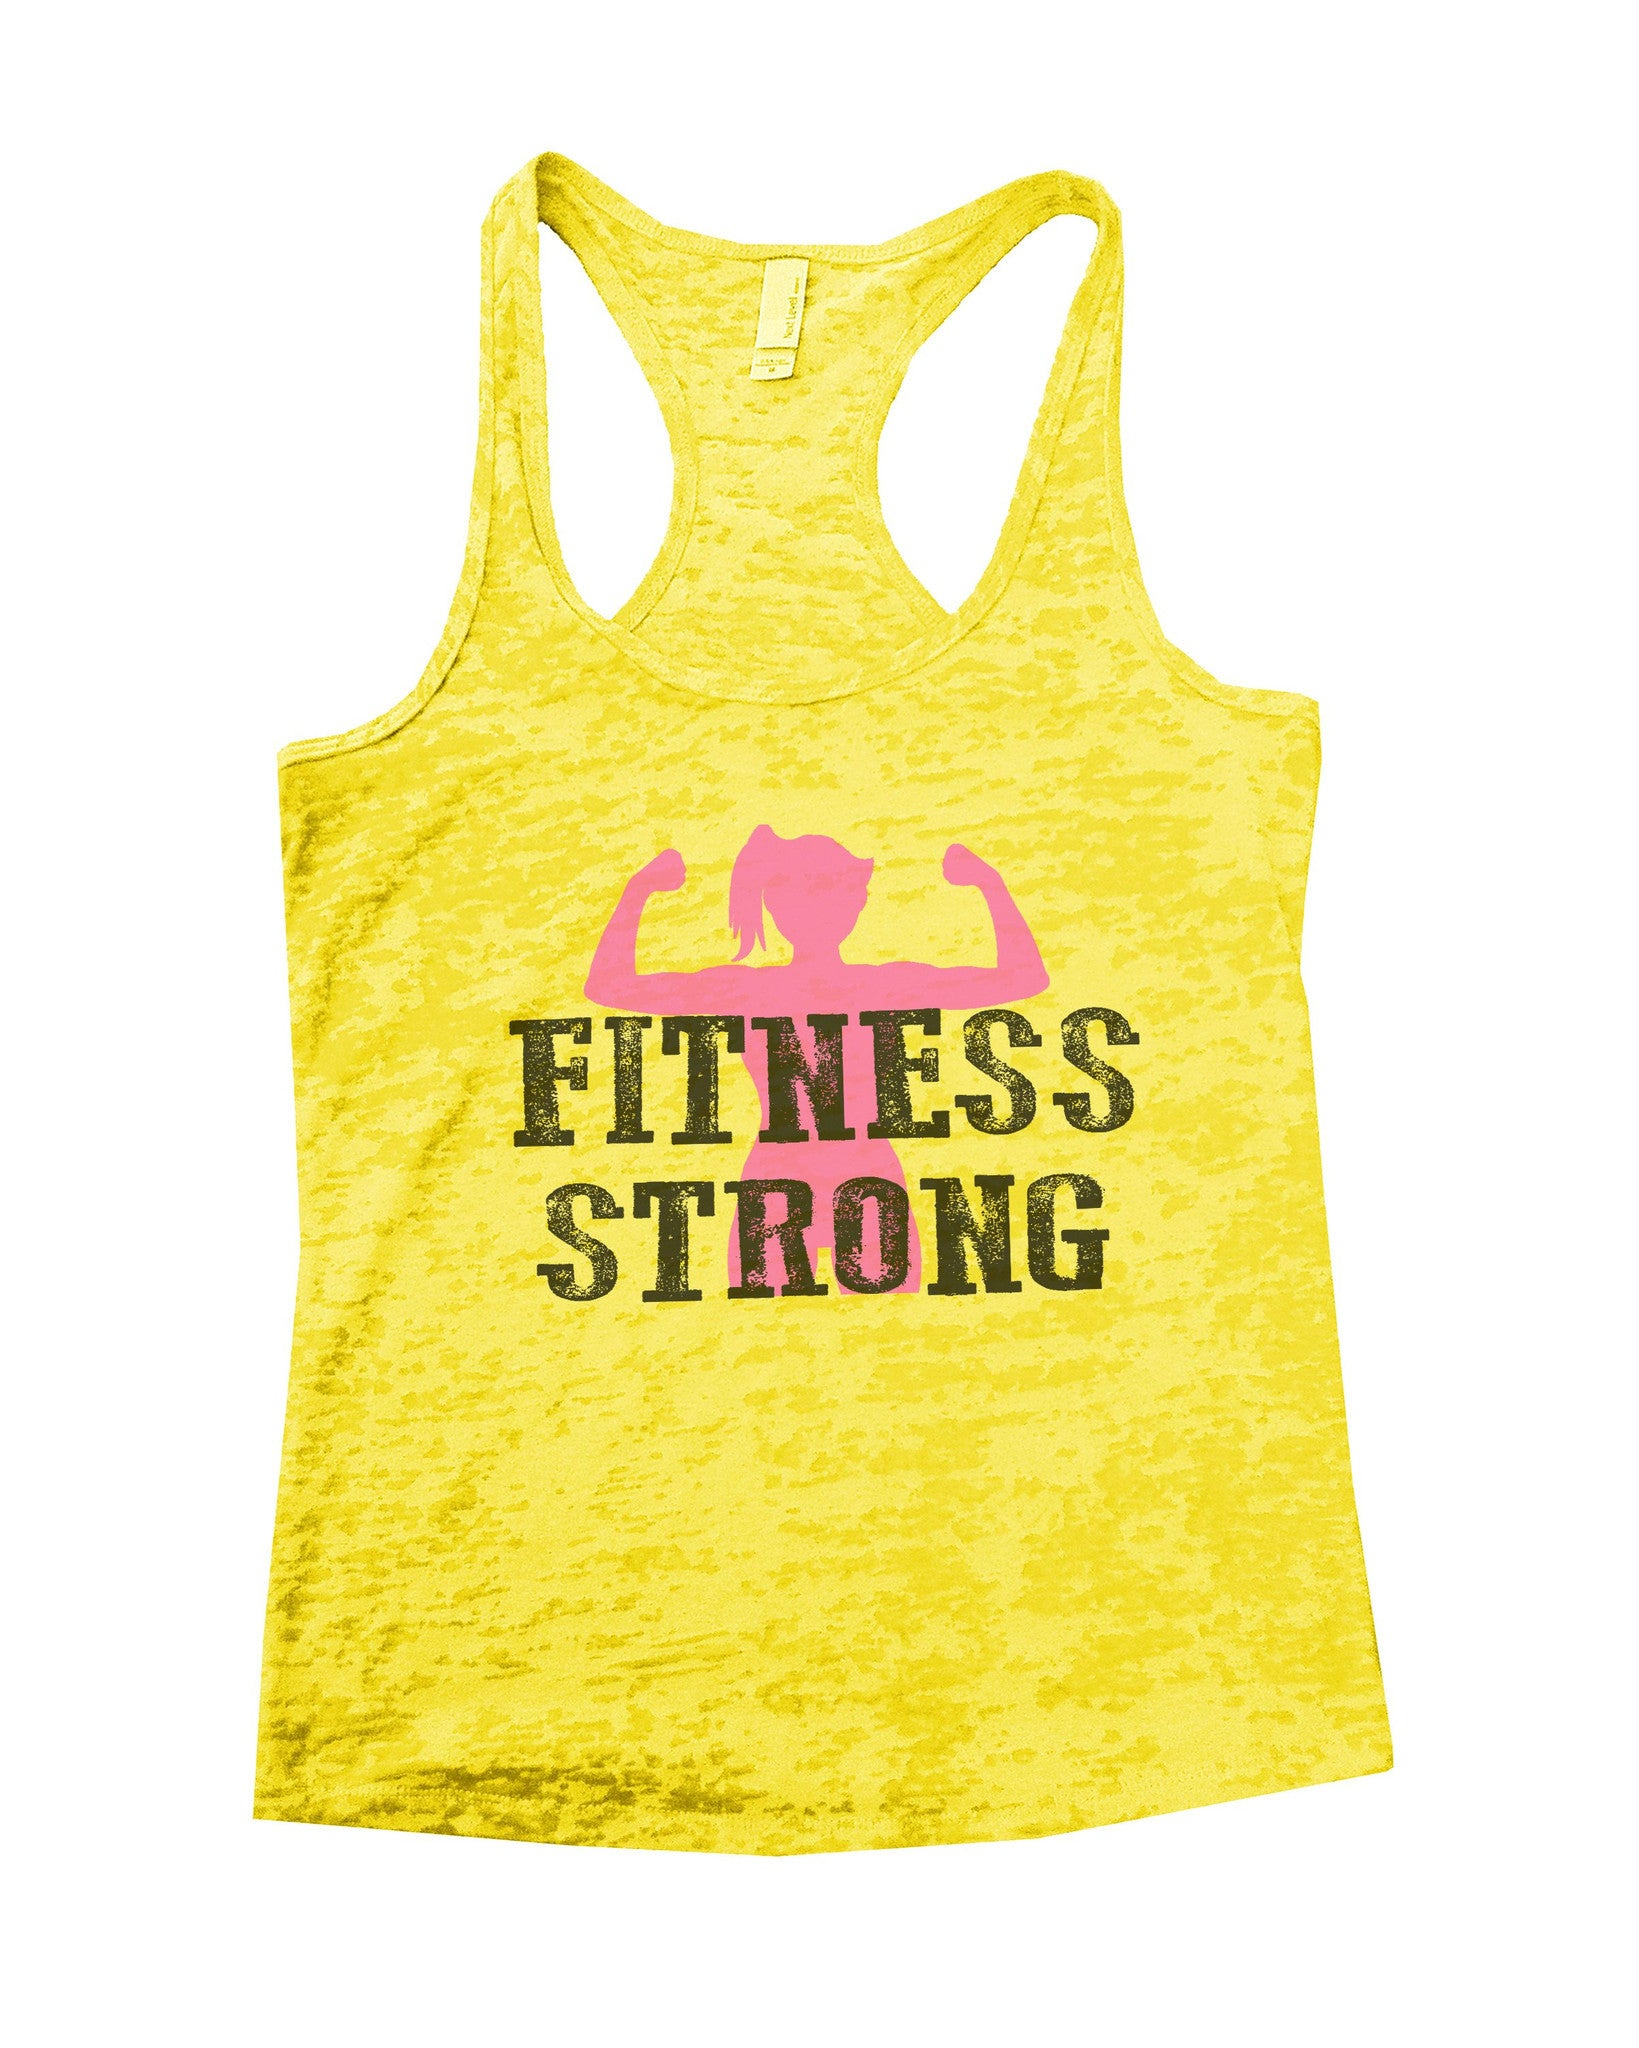 Fitness Strong Burnout Tank Top By BurnoutTankTops.com - 782 - Funny Shirts Tank Tops Burnouts and Triblends  - 6